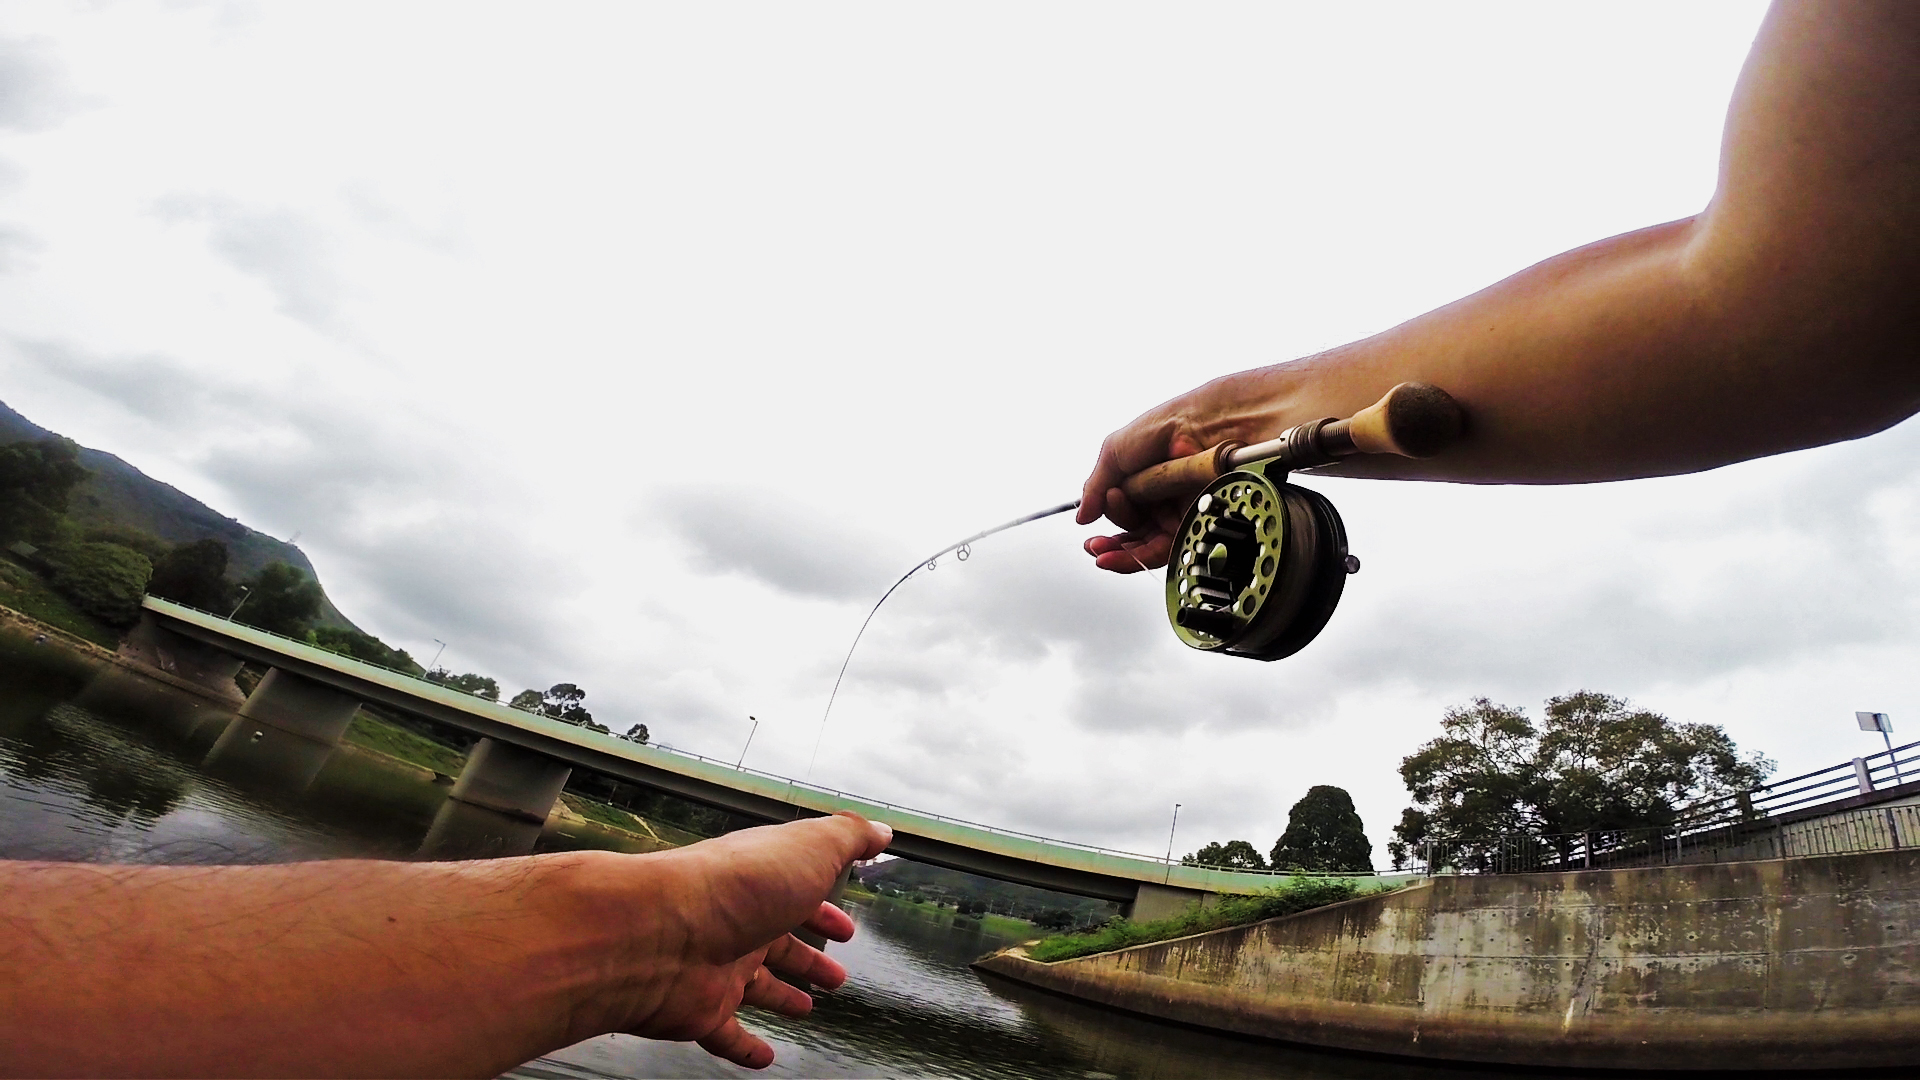 Fly fishing in the rivers of hong kong tokyo fly fishing for Do kids need a fishing license